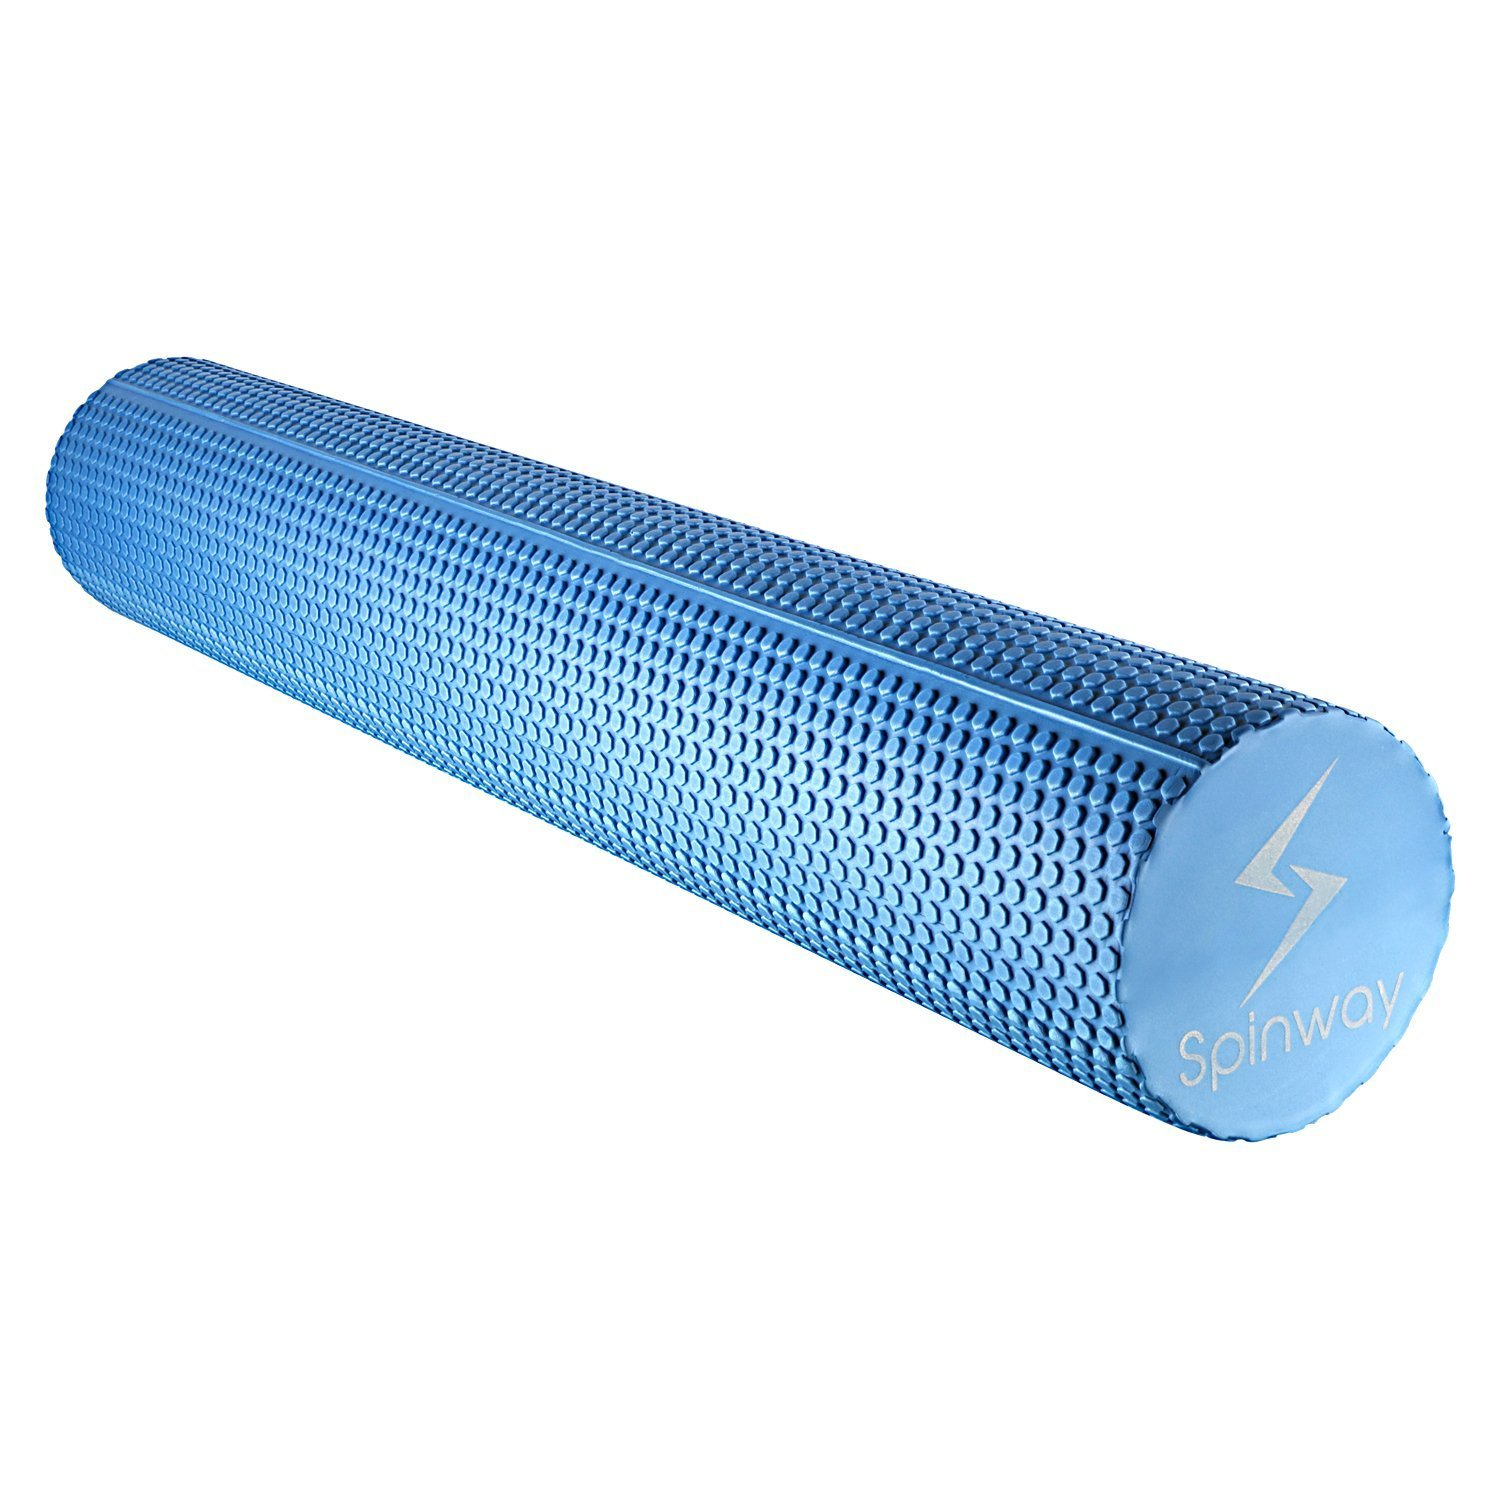 spinway Yoga Foam Roller Speckled Foam Rollers for Muscles Extra Firm High Density for Physical Therapy Exercise Deep Tissue Muscle Massage (Blue) by spinway (Image #3)